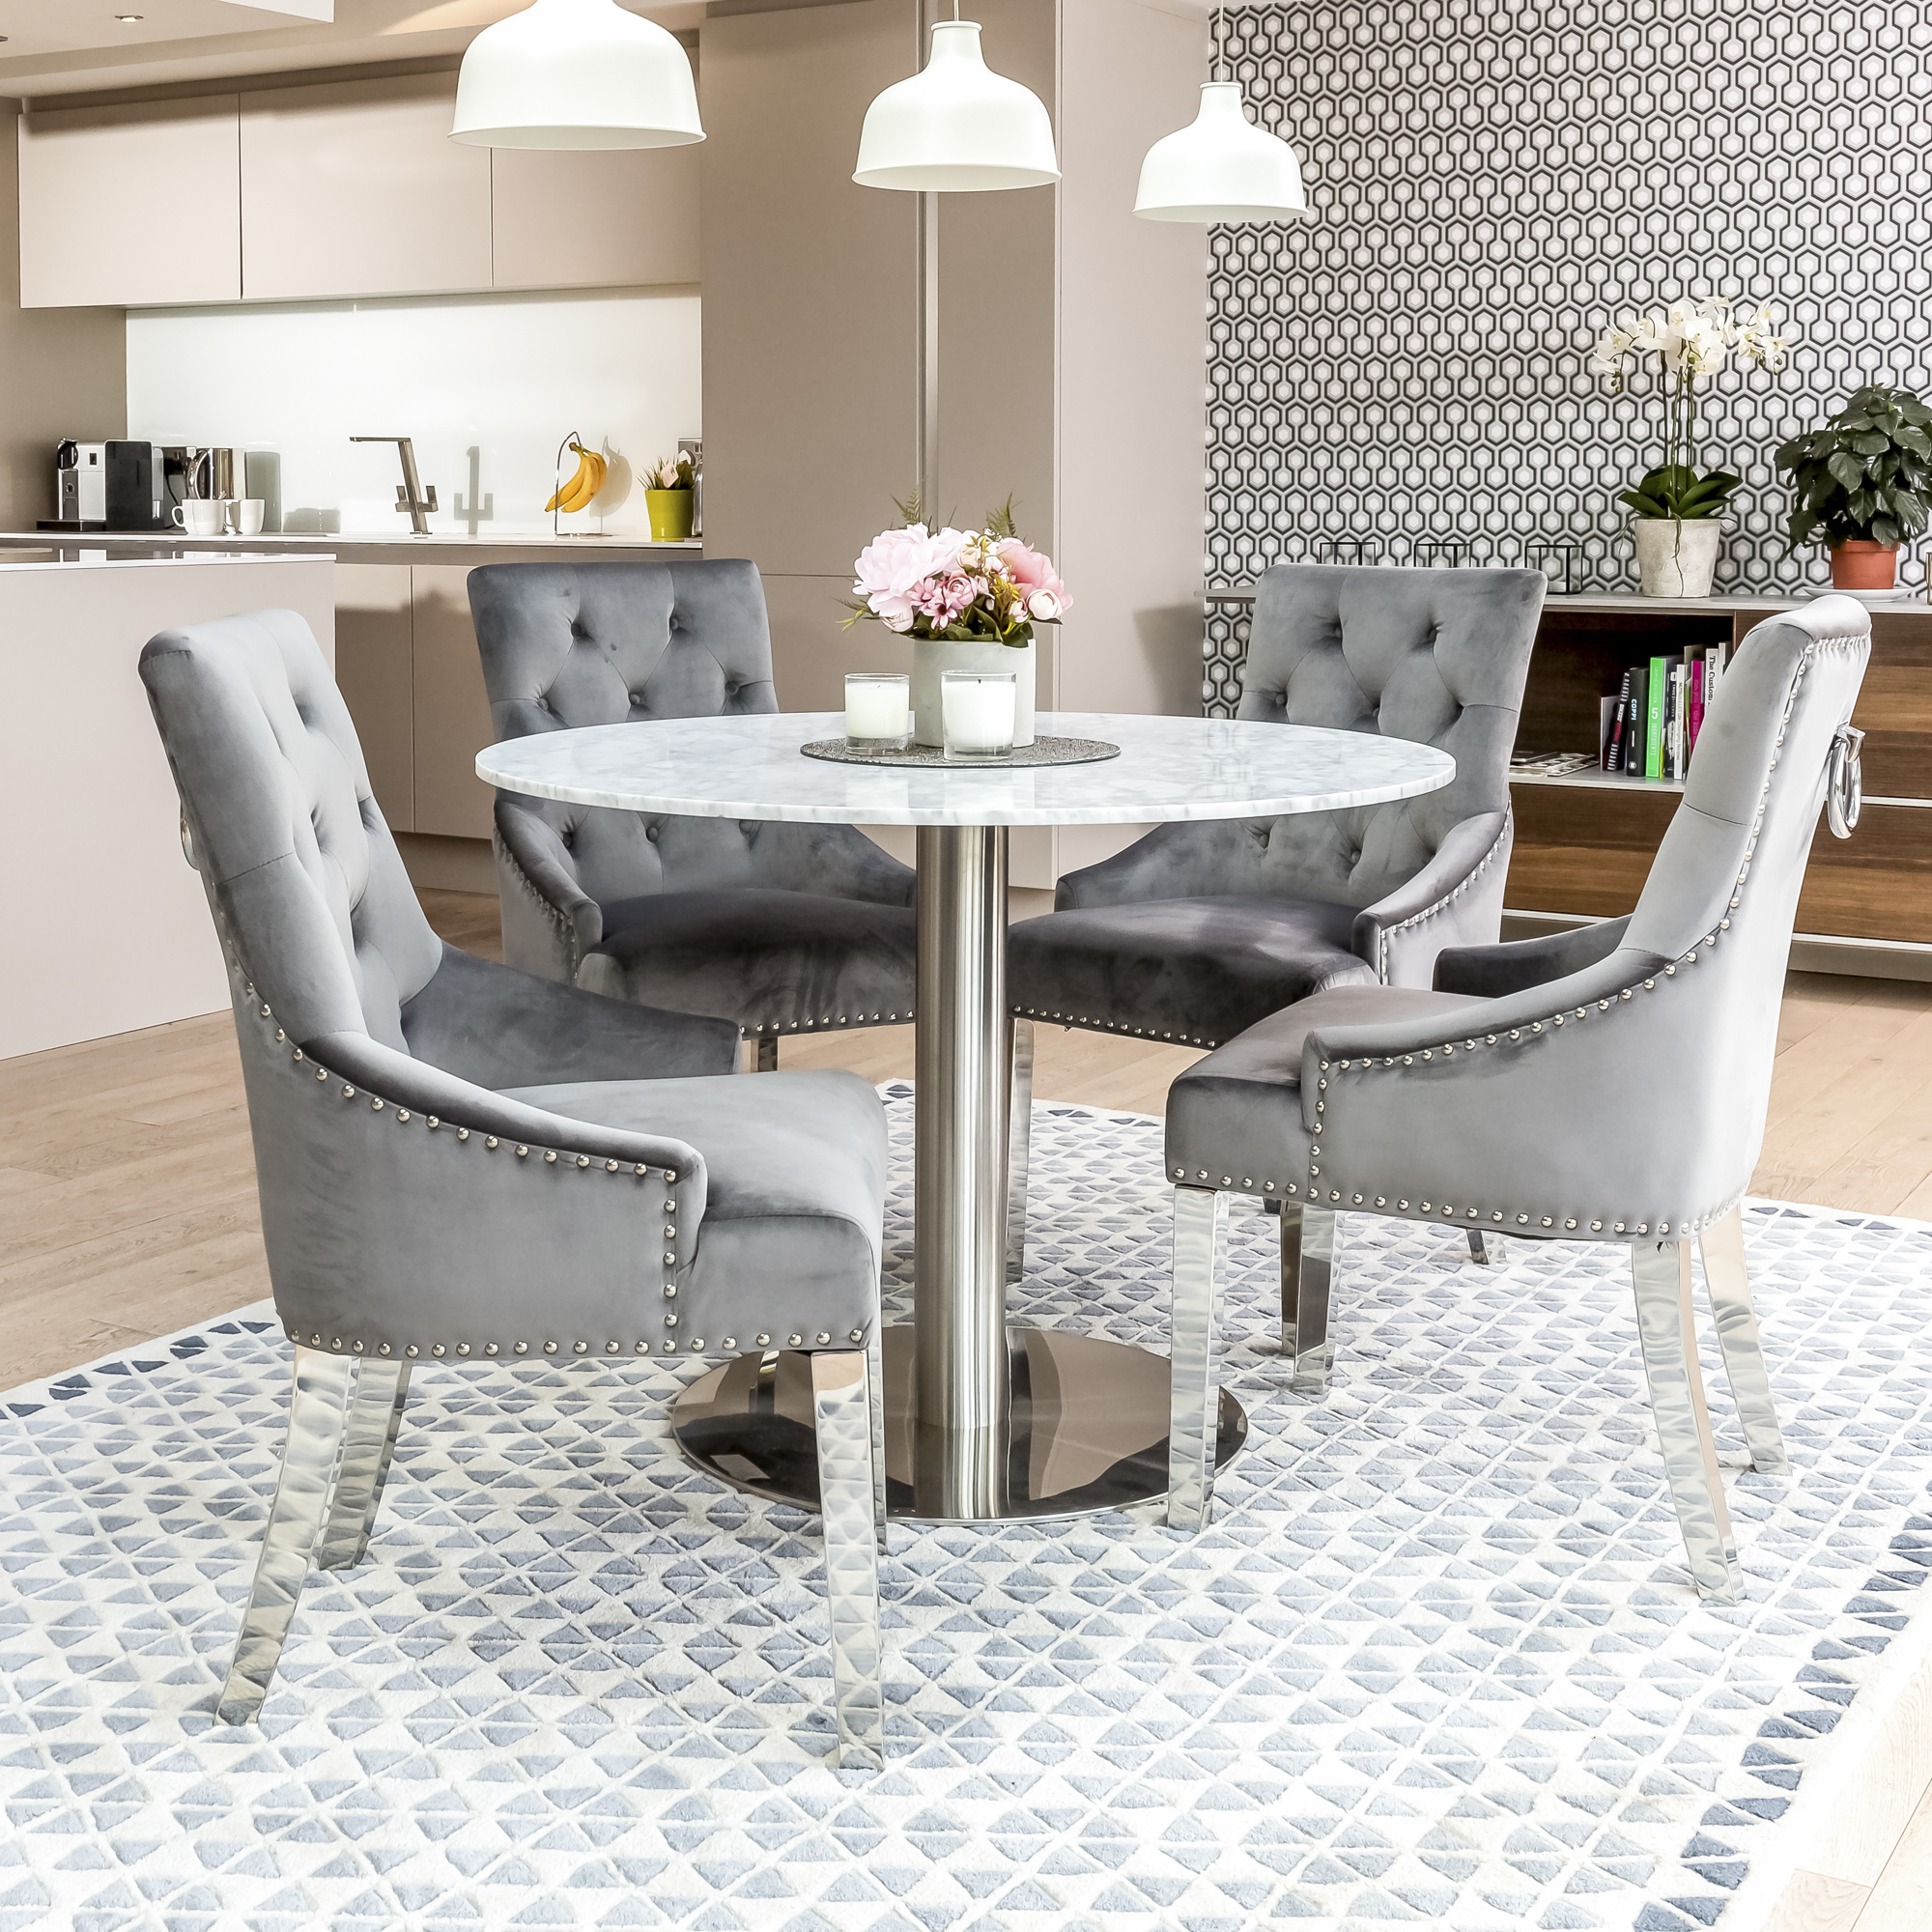 1.06m Carrara Marble Circular Dining Table with 4 Chelsea Grey Brushed Velvet Dining Chairs